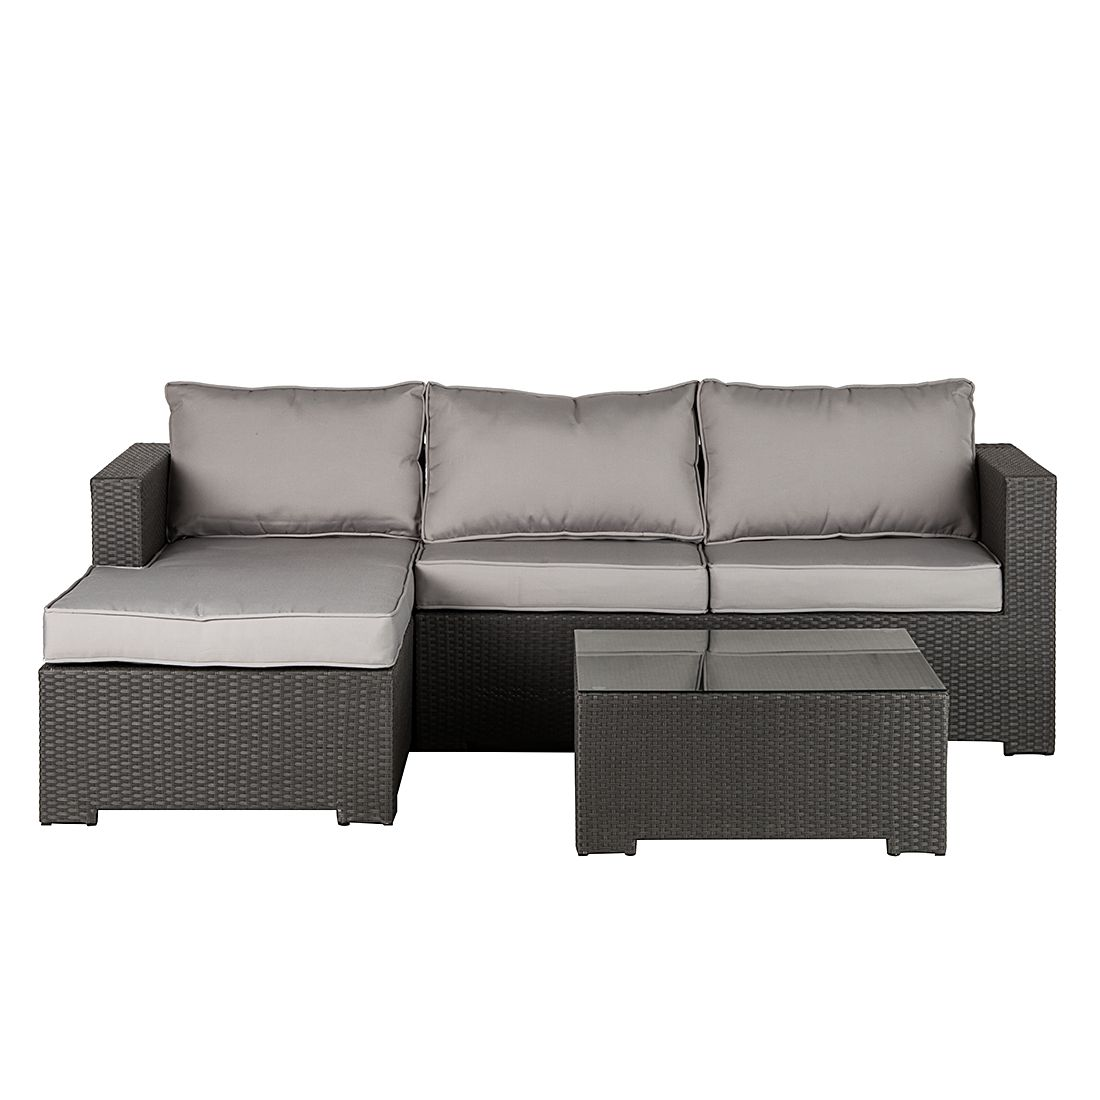 3 teiliges sofa 3 teiliges sofa with 3 teiliges sofa excellent sitzer sofa bht ca xx cm with 3. Black Bedroom Furniture Sets. Home Design Ideas